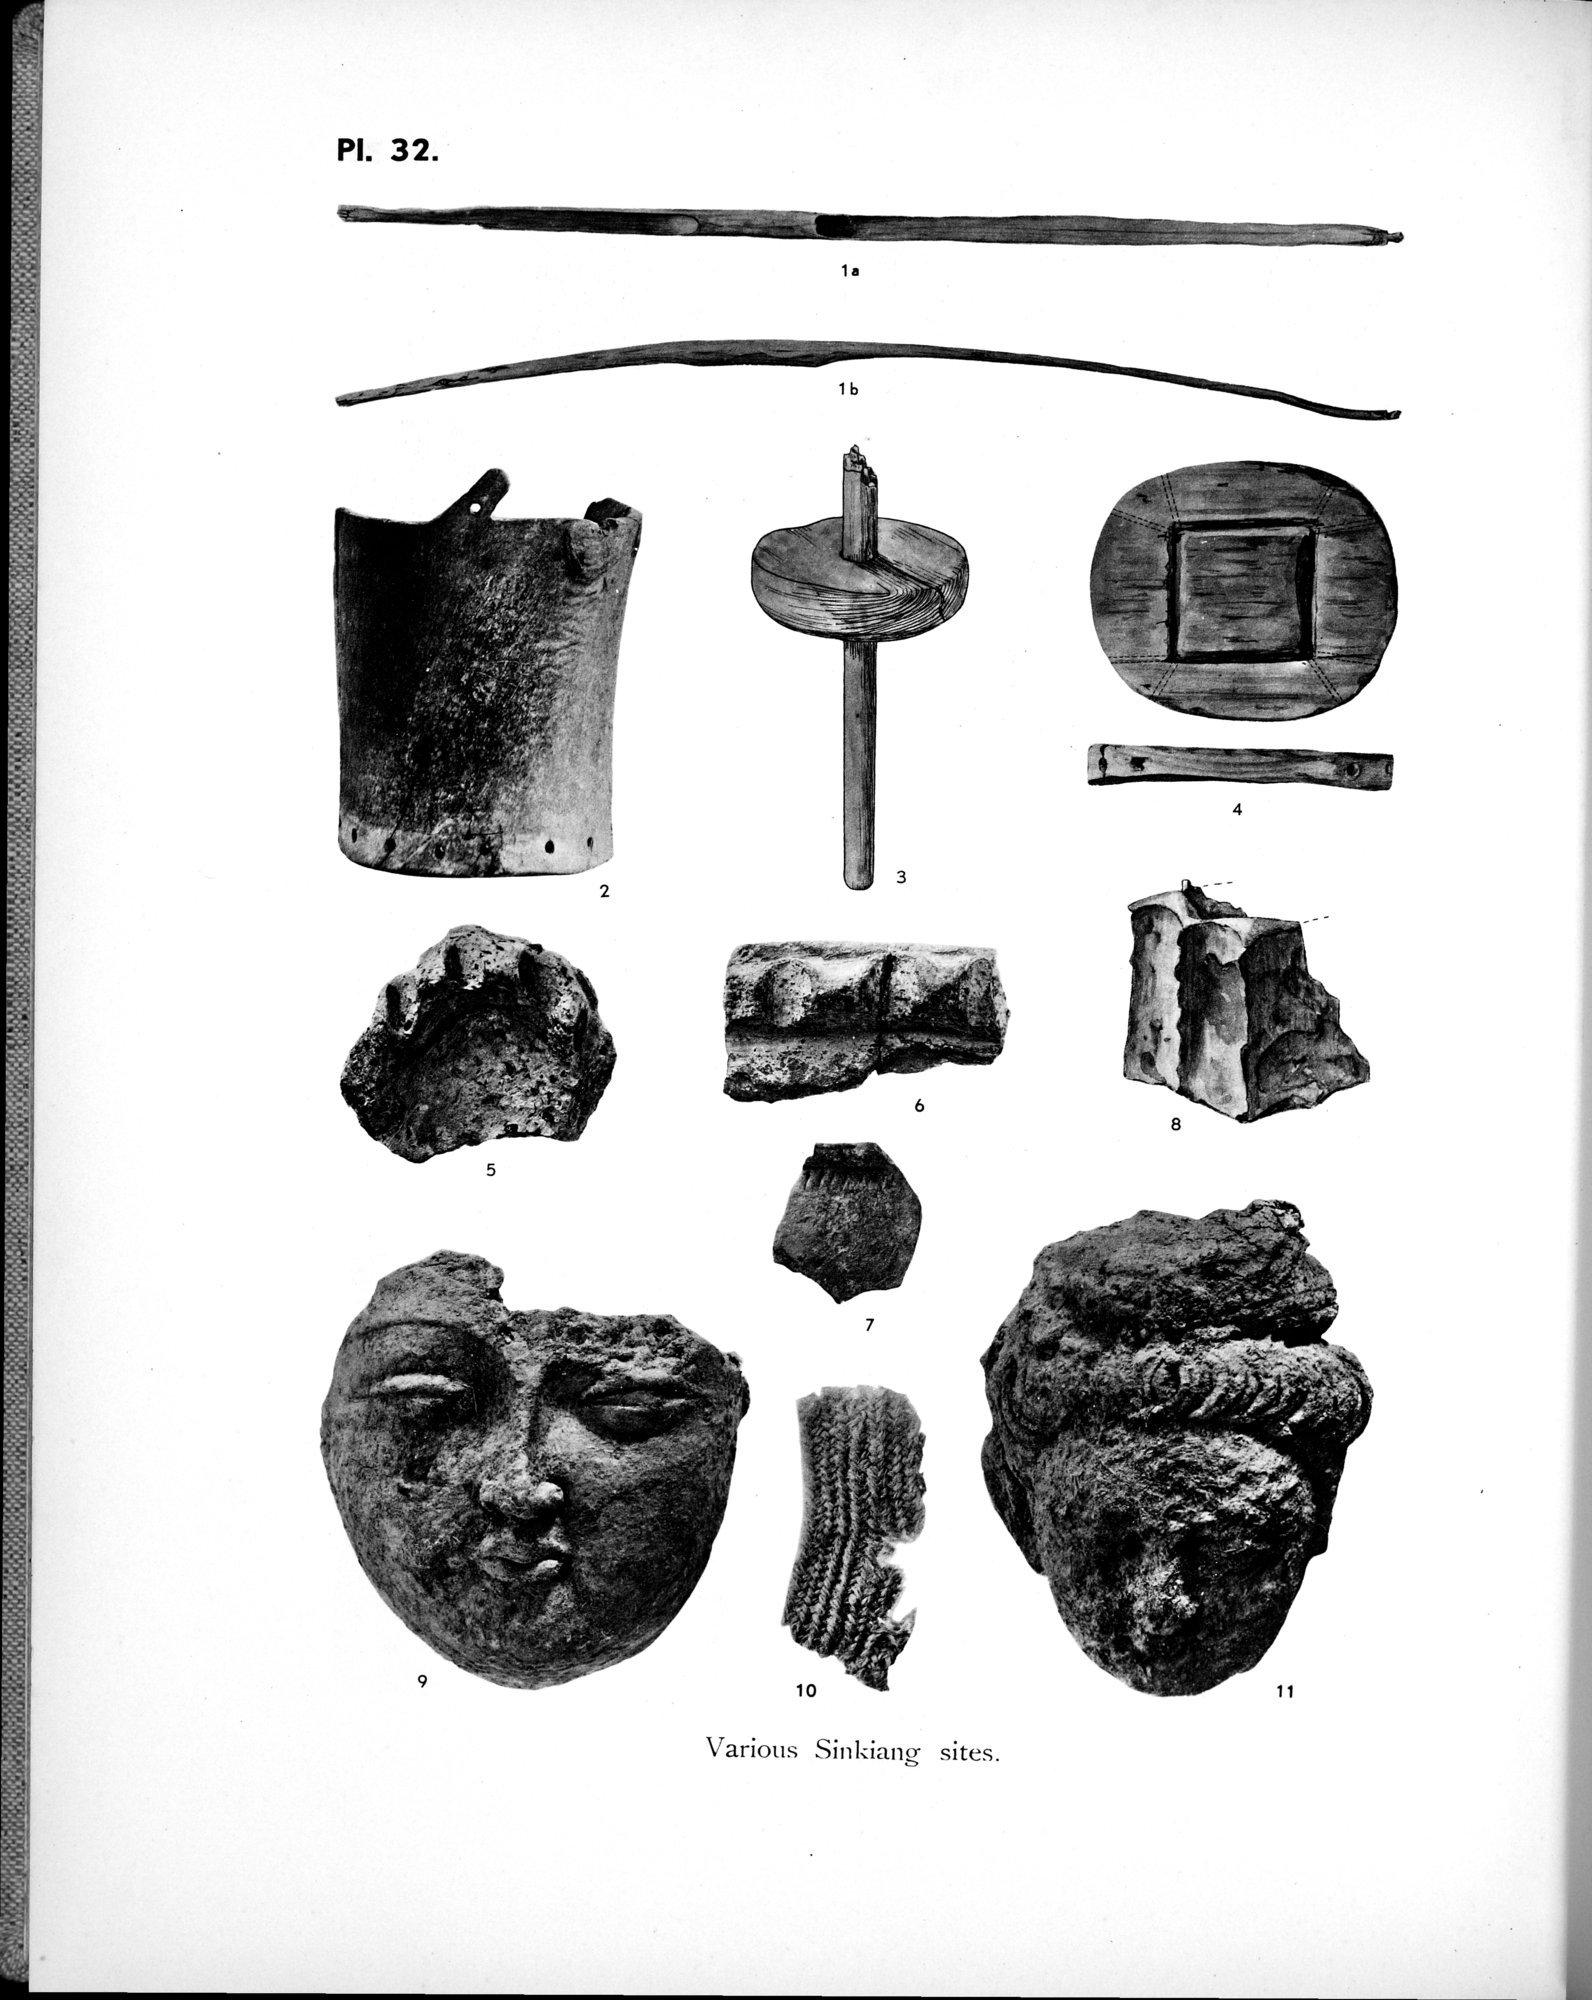 Archaeological Researches in Sinkiang : vol.1 / Page 320 (Grayscale High Resolution Image)